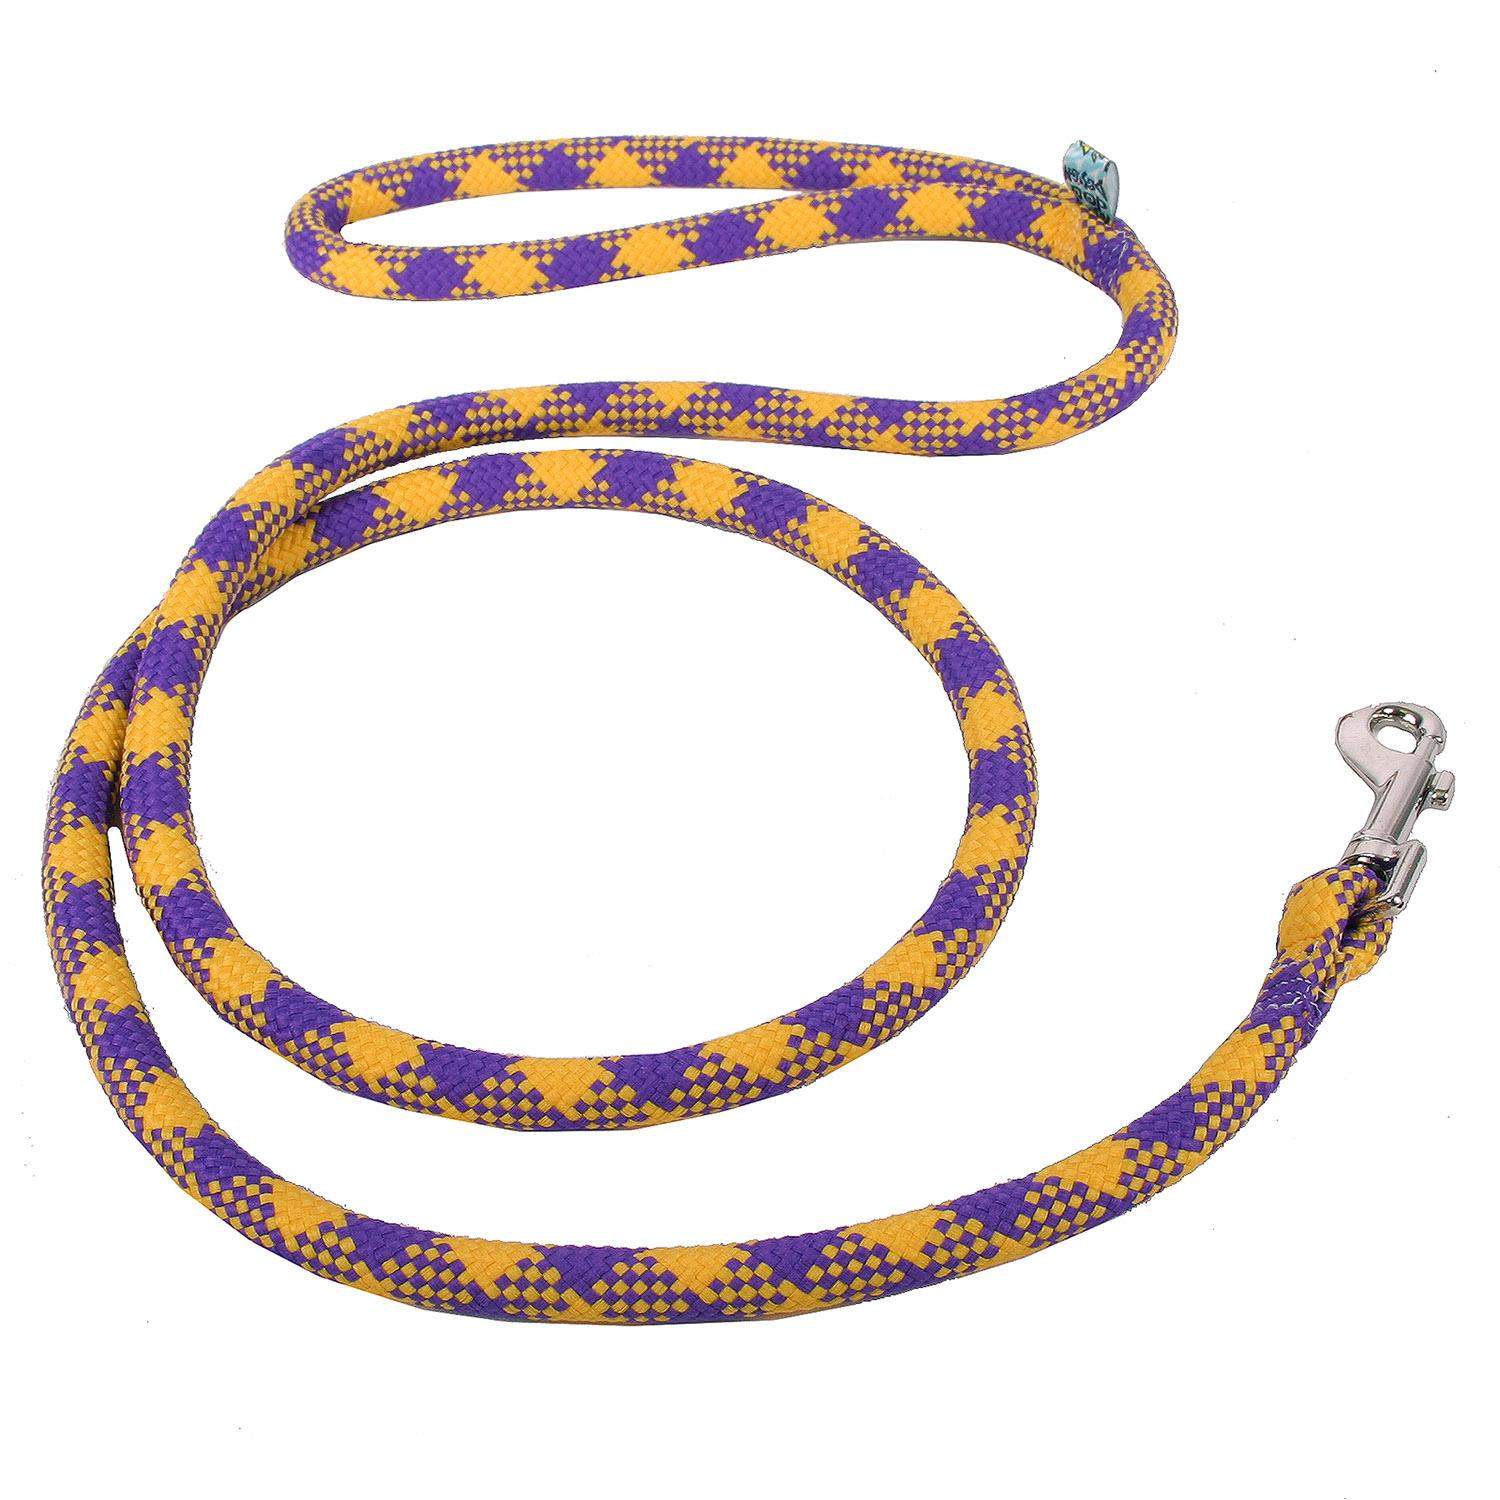 Round Braided Team Colors Dog Leash by Yellow Dog - Purple and Gold